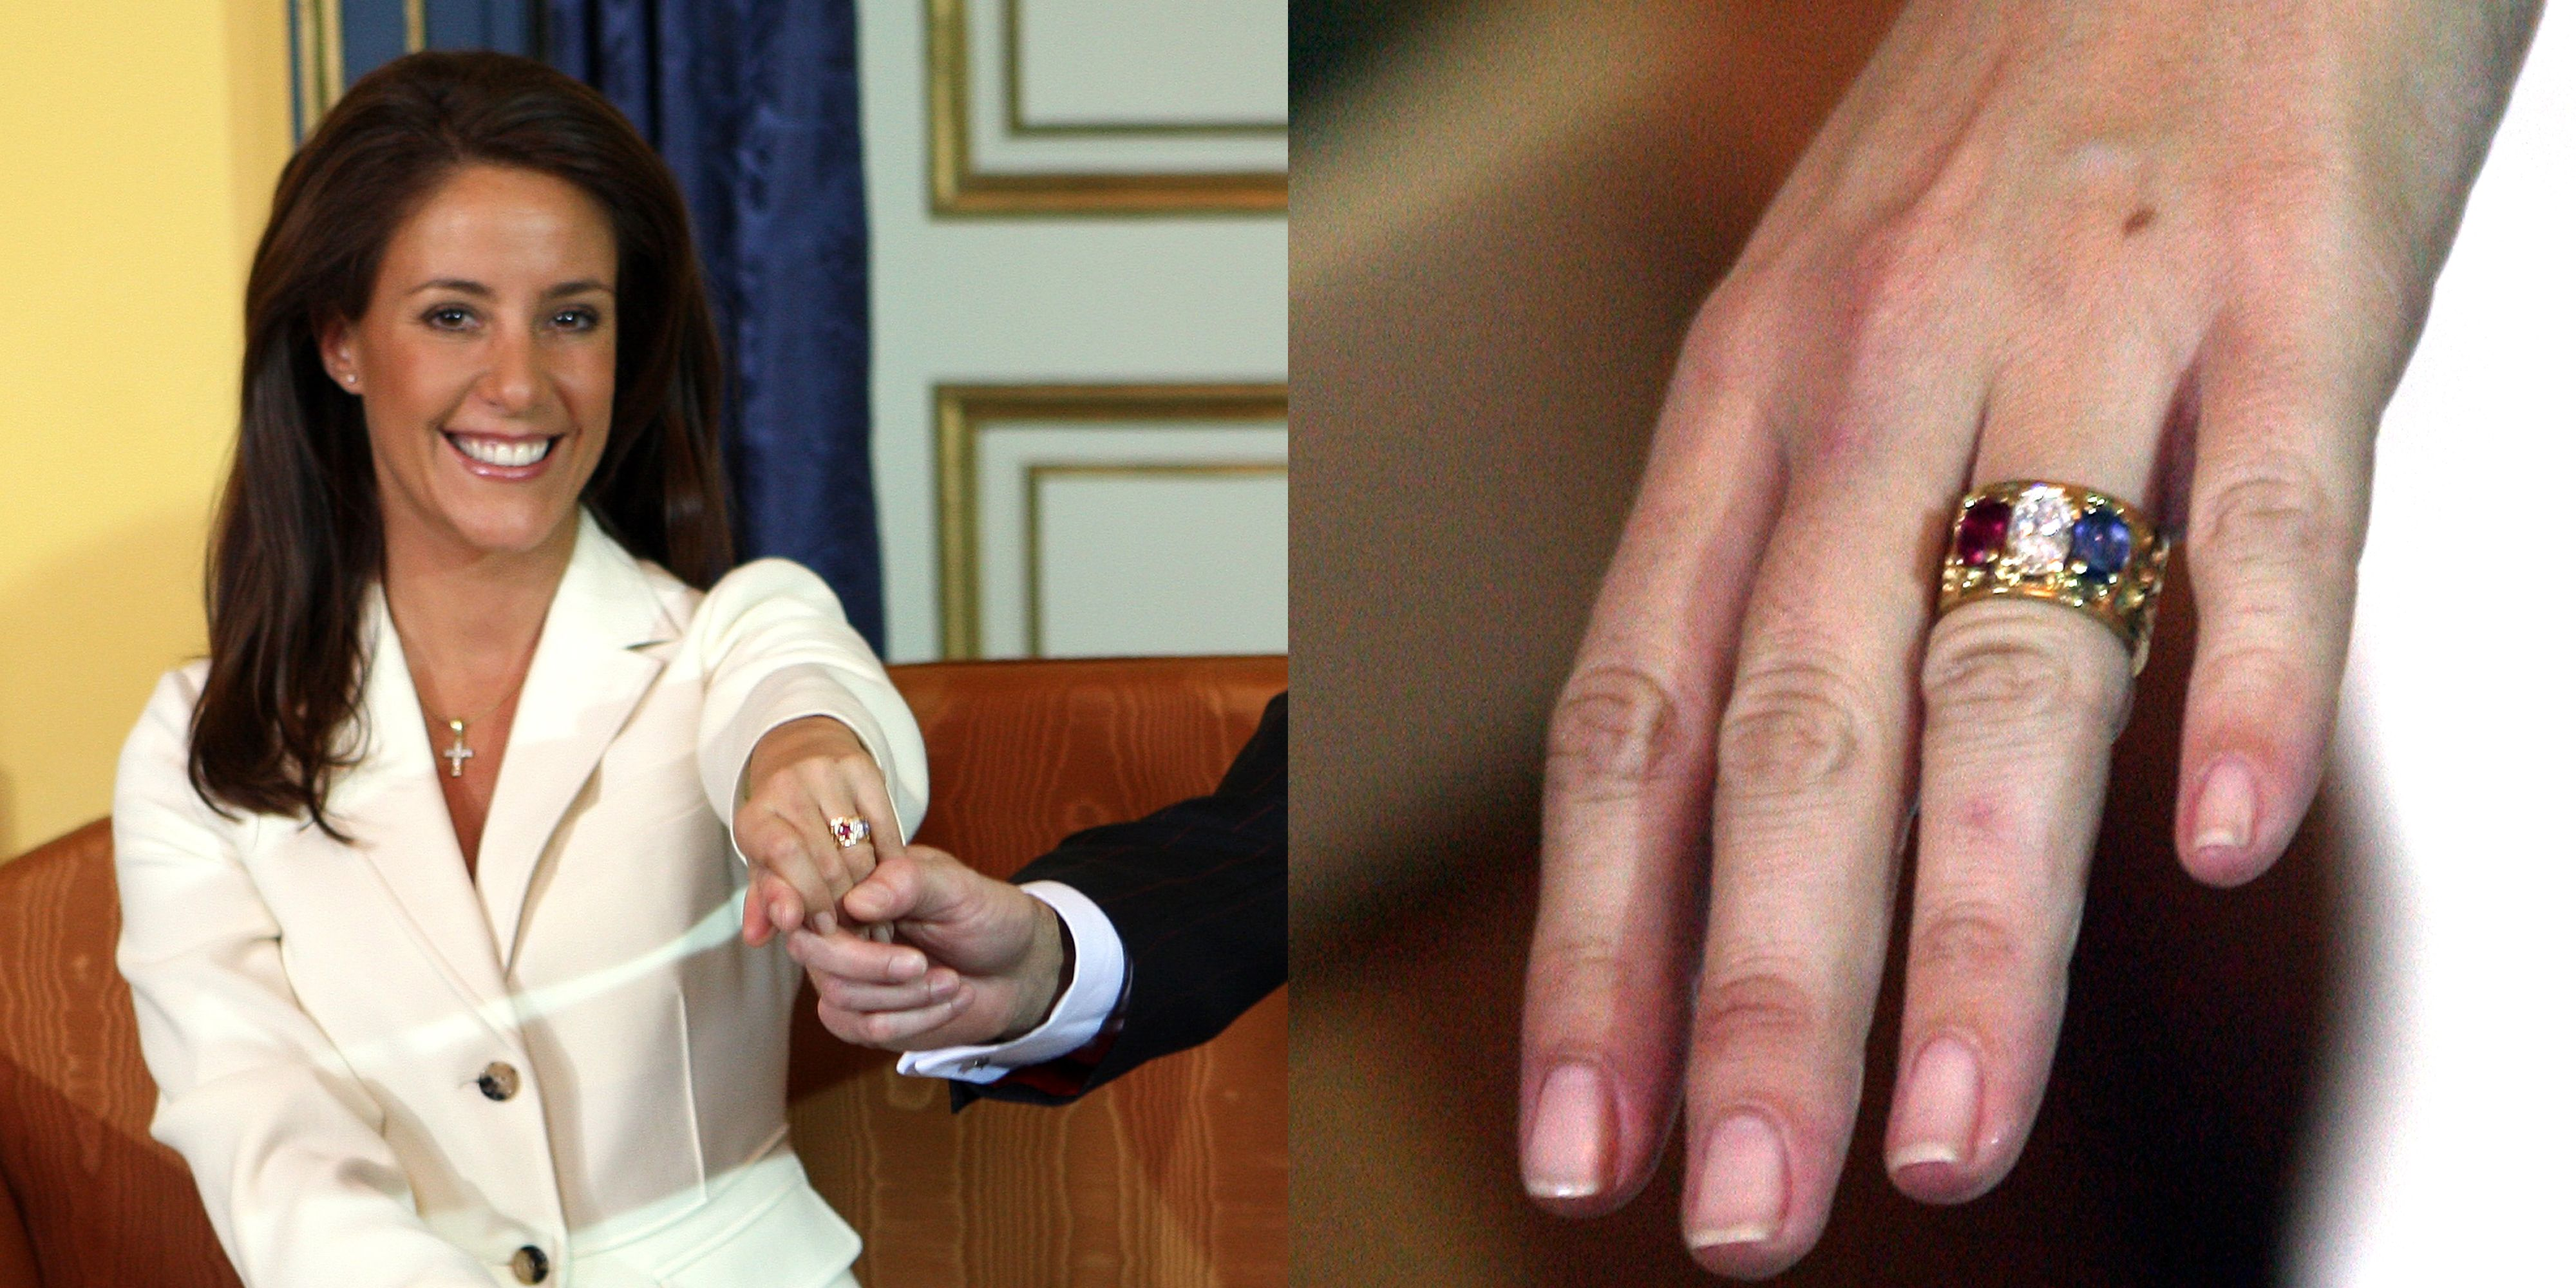 victoria rings swedish wedding a engagement white ring royal jeweller gold the daniel court gave